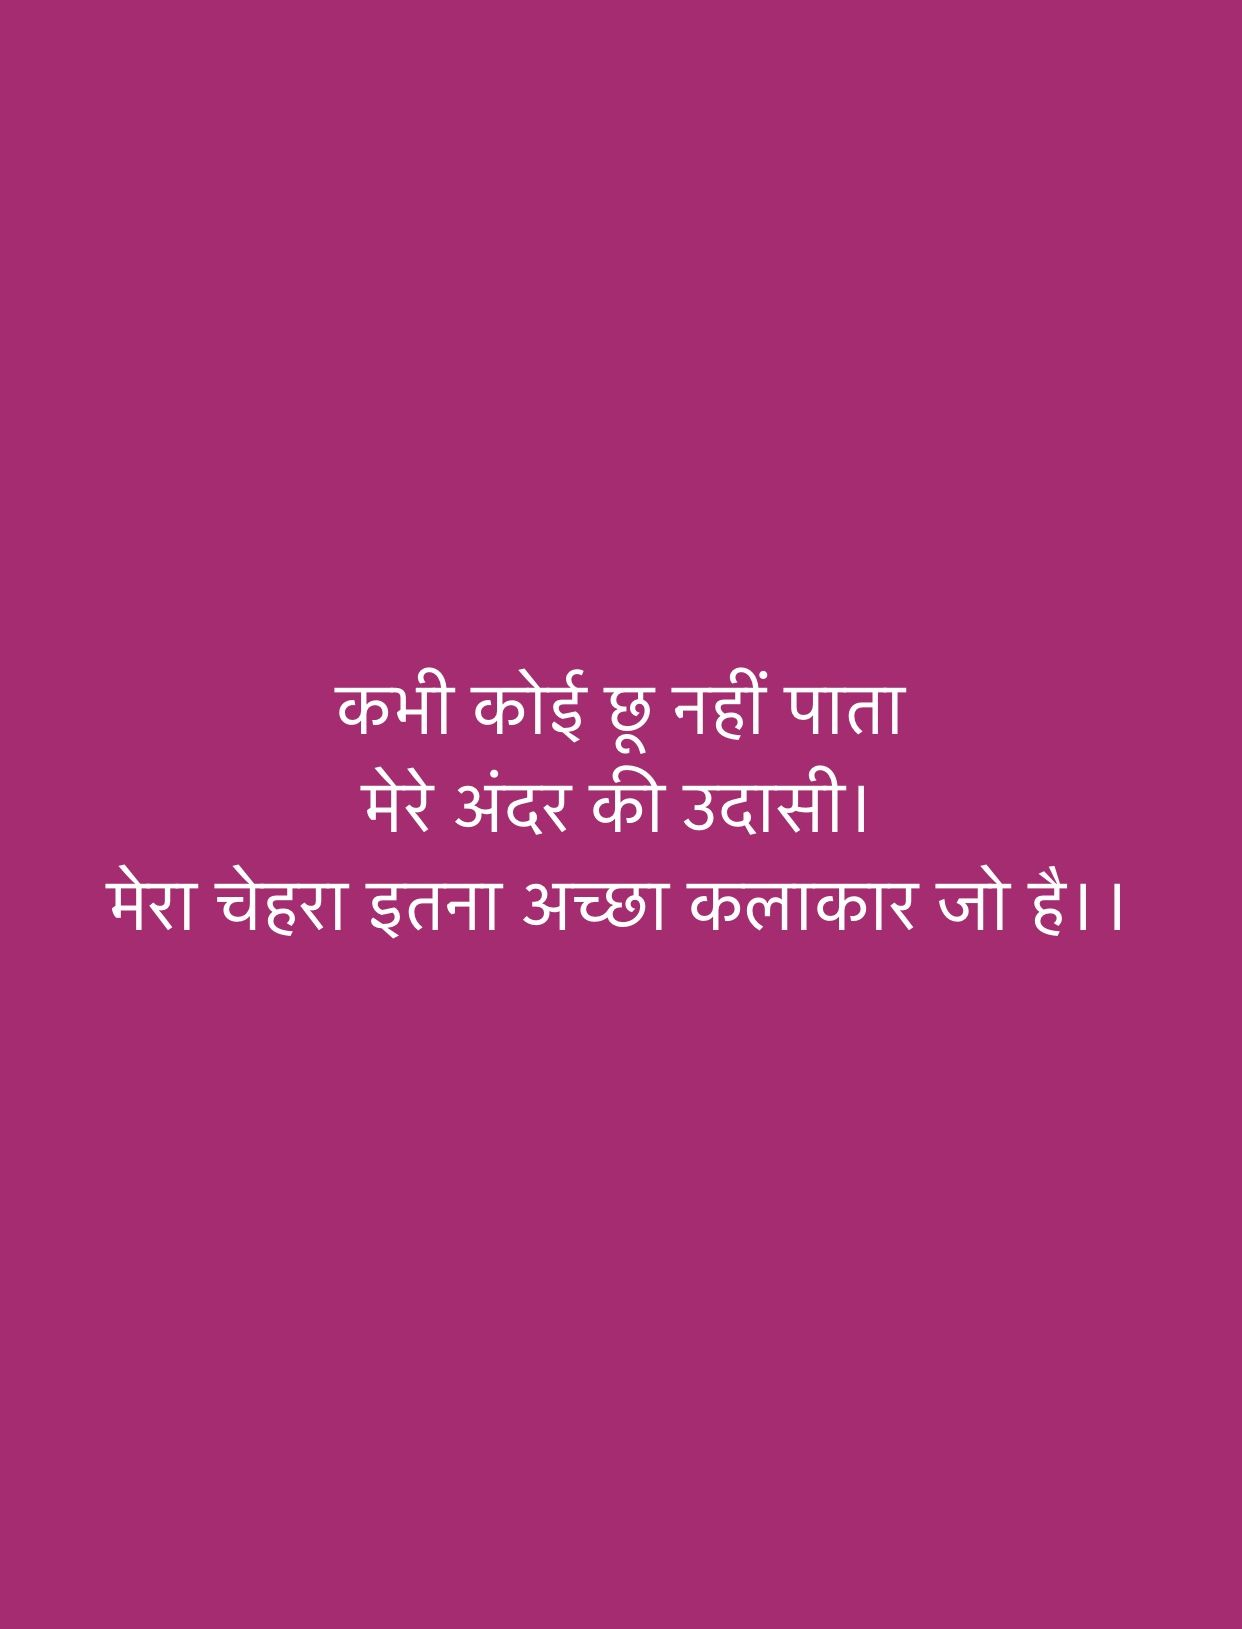 Pin By Dr Rahul Kumar On Everyone Feeling Love Quotes Poetry Reality Quotes Heartfelt Quotes